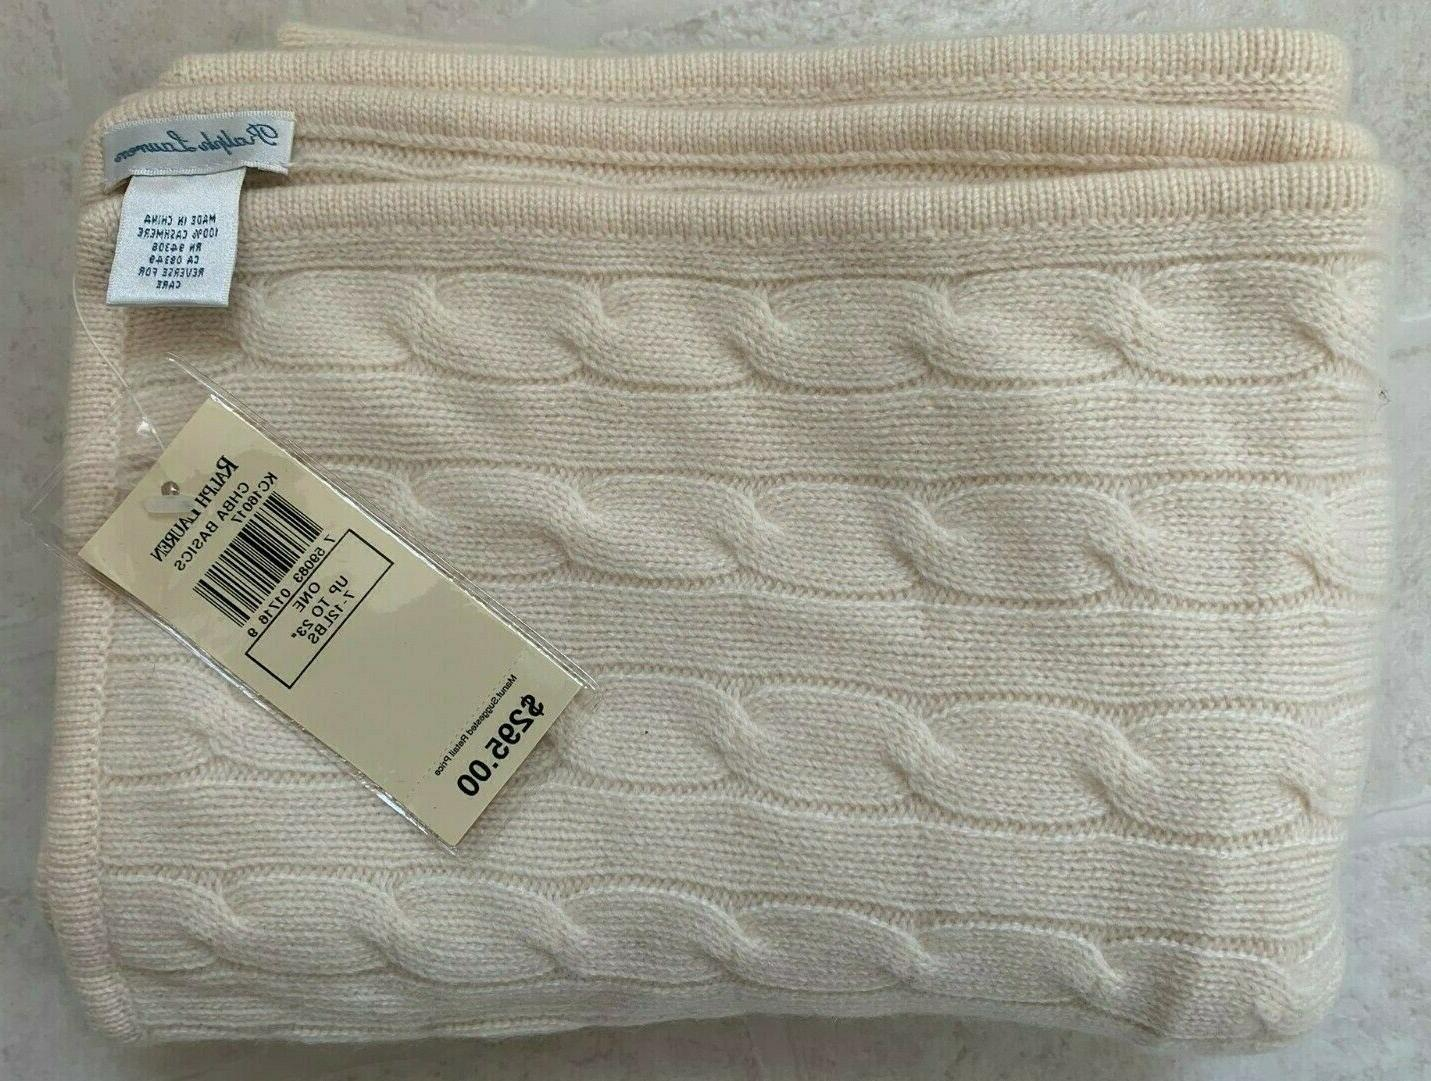 nwt cashmere baby blanket cream beige color